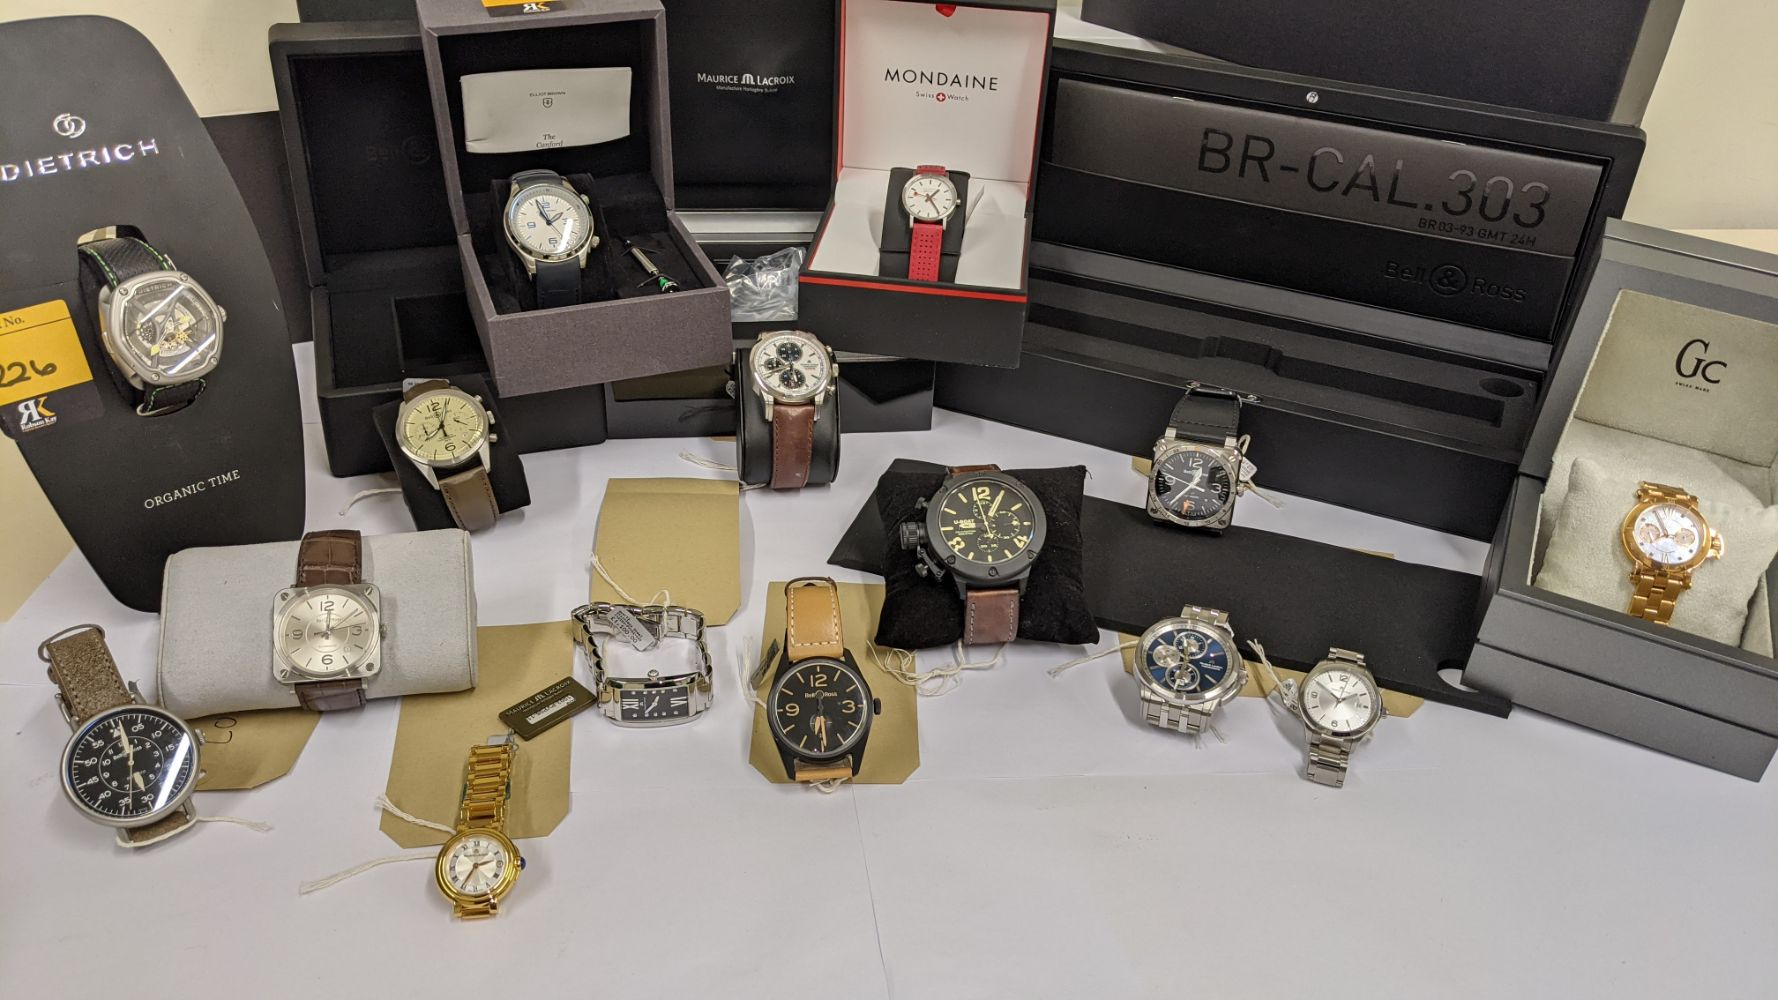 INSOLVENCY JEWELLERY SALE: Watches, Jewellery, Tools, Chattels & More. NO RESERVES. Includes Bell & Ross,U-Boat, Maurice Lacroix & more